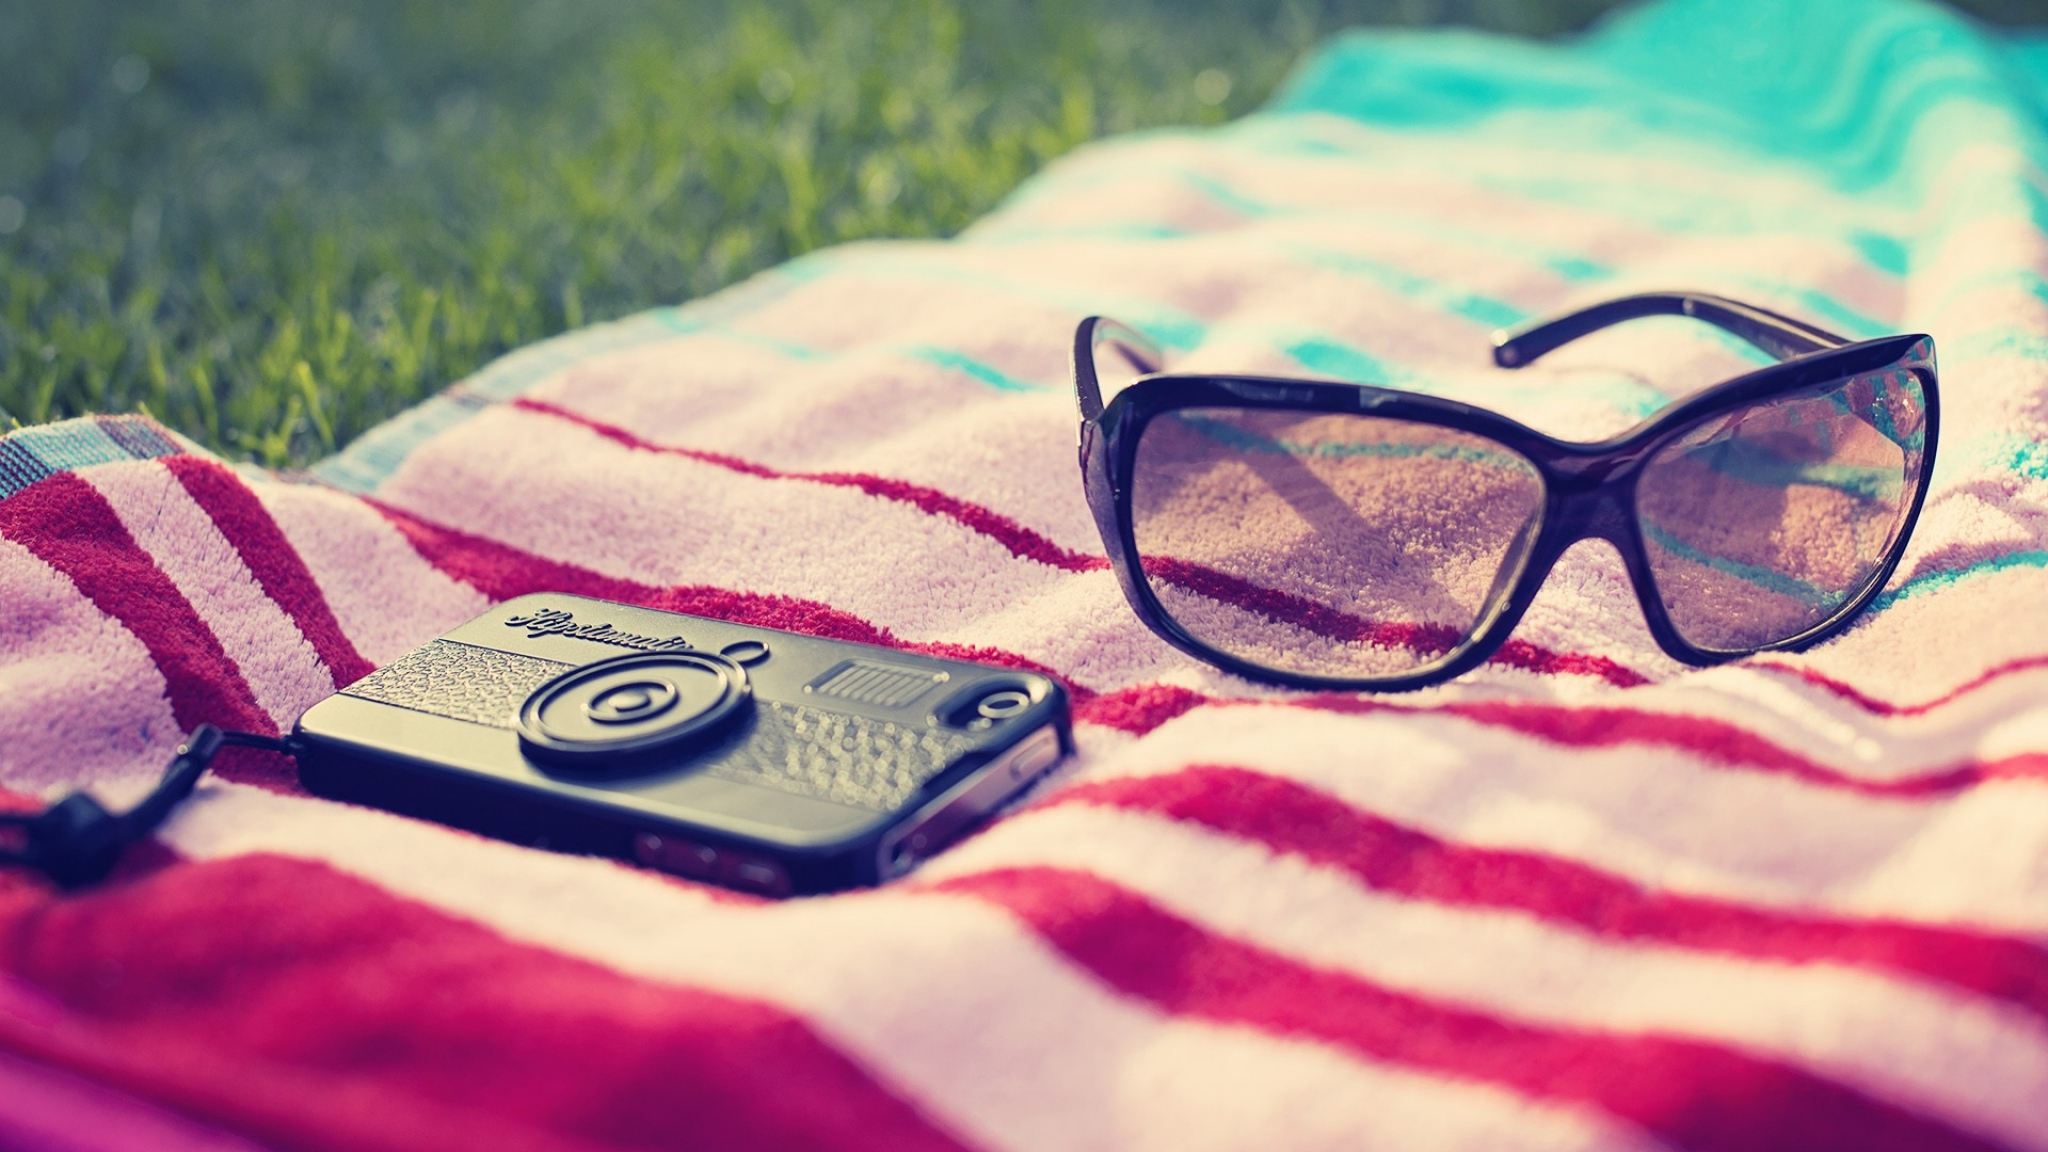 phone_glasses_towels_summer_beach_49262_2048x1152